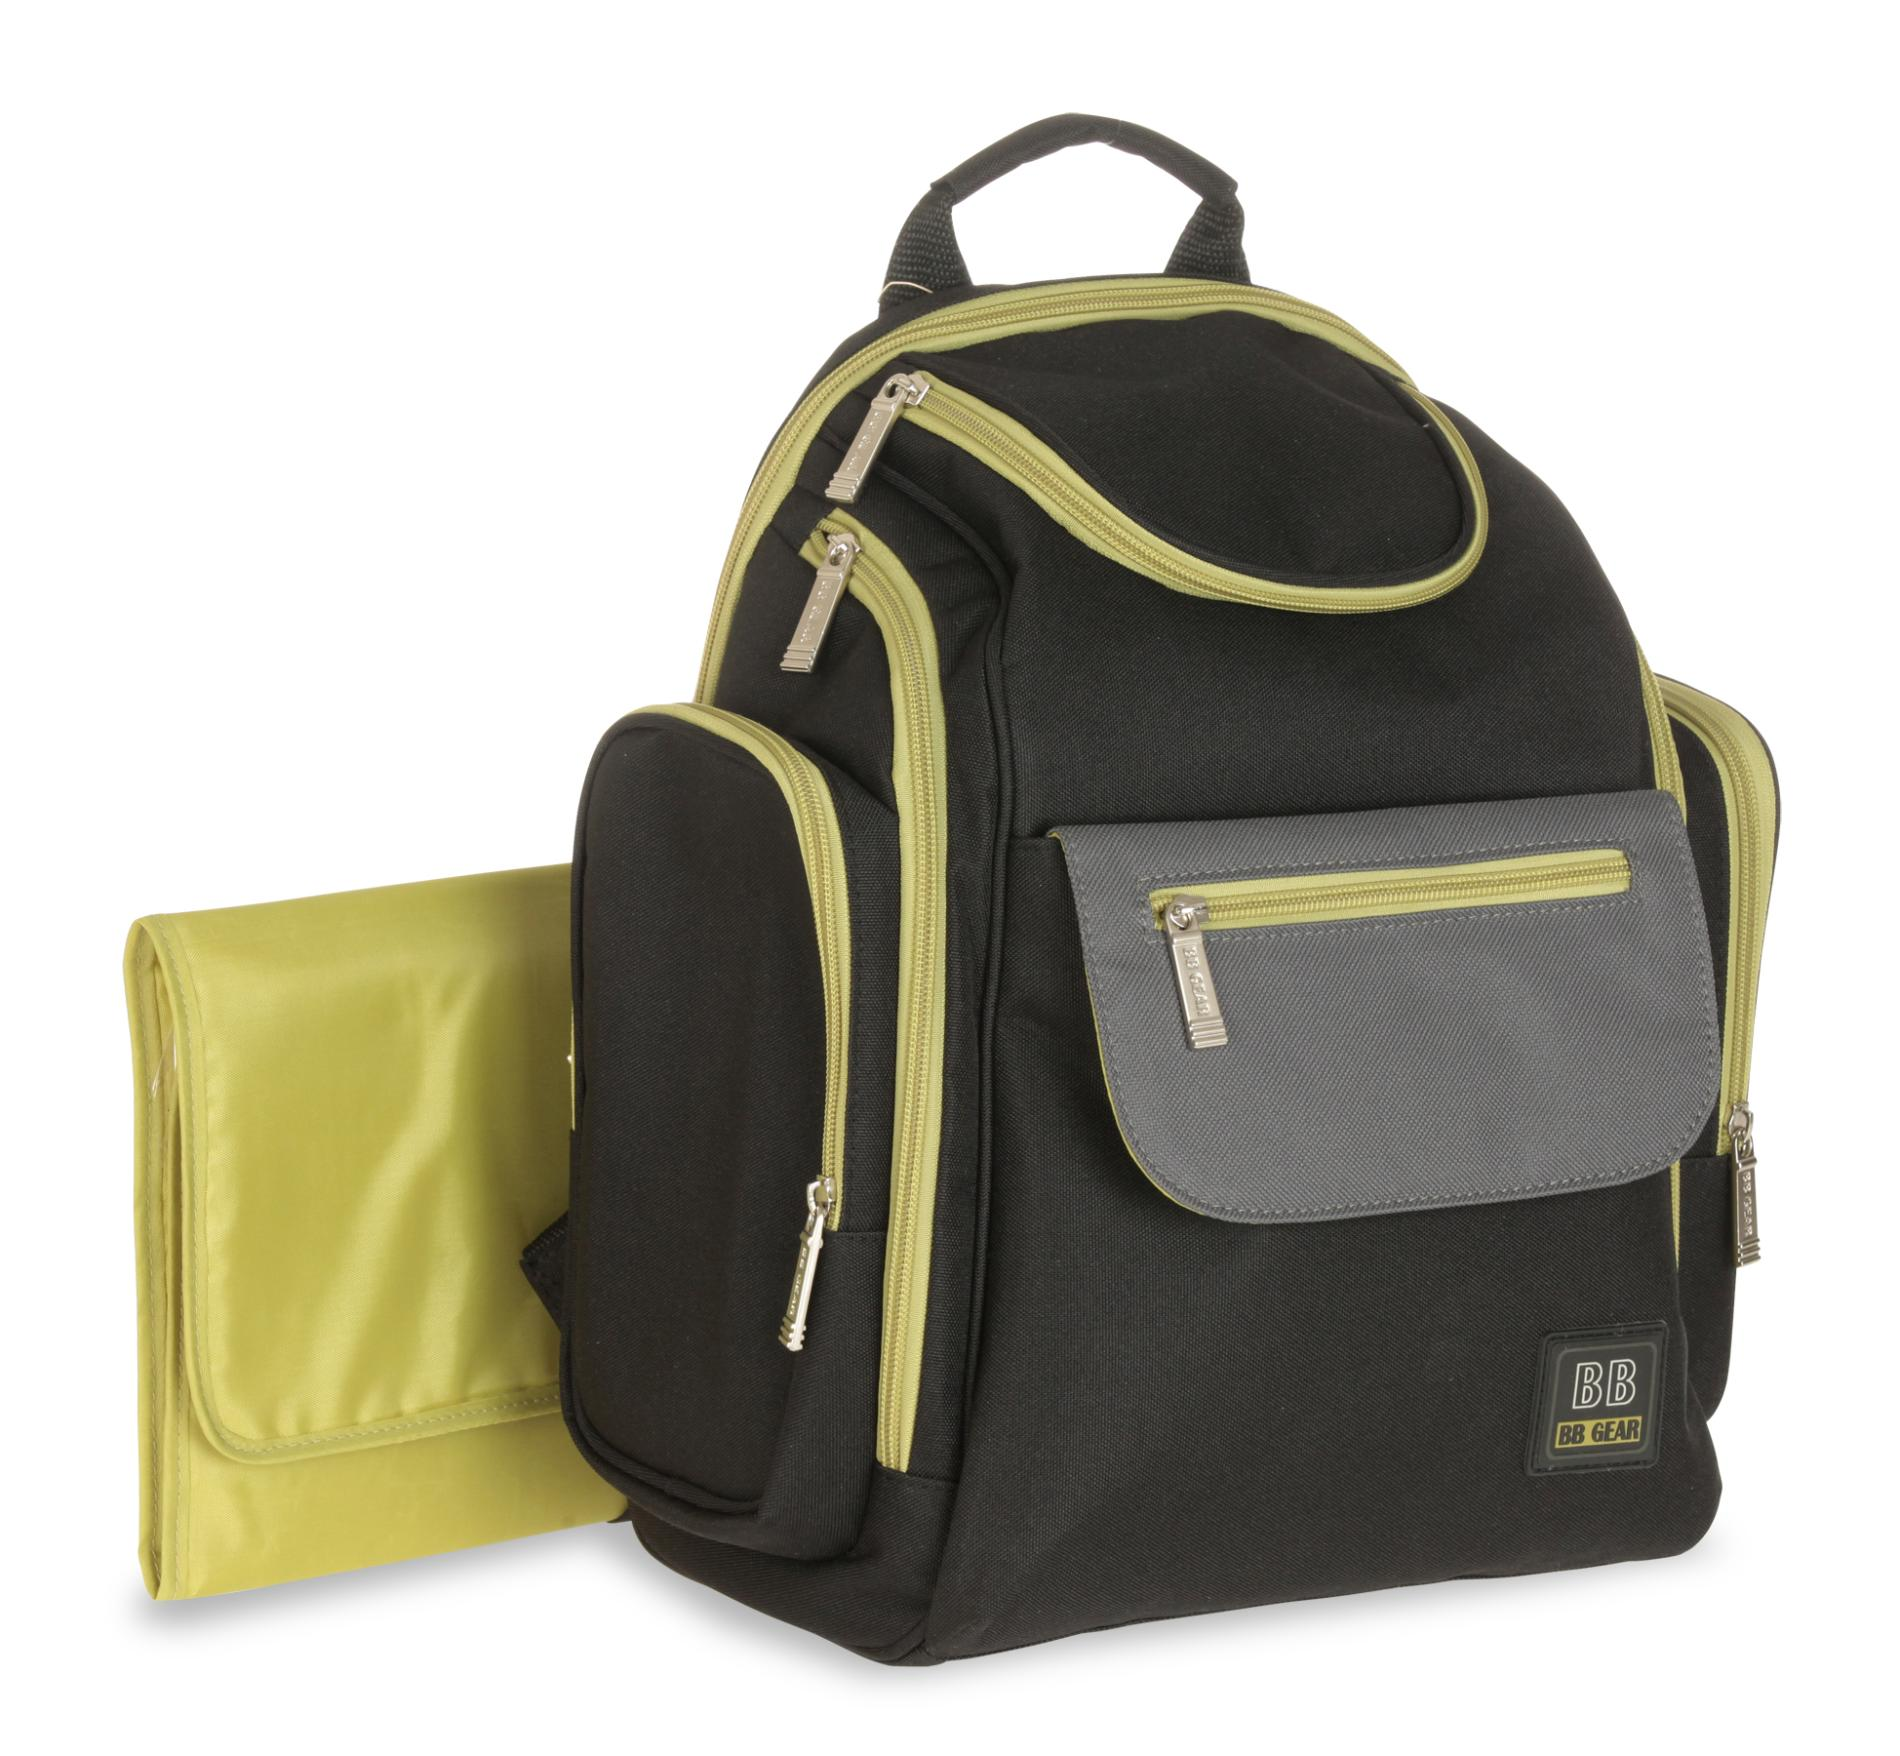 Baby Boom Quick Find Backpack Diaper Bag & Changing Pad